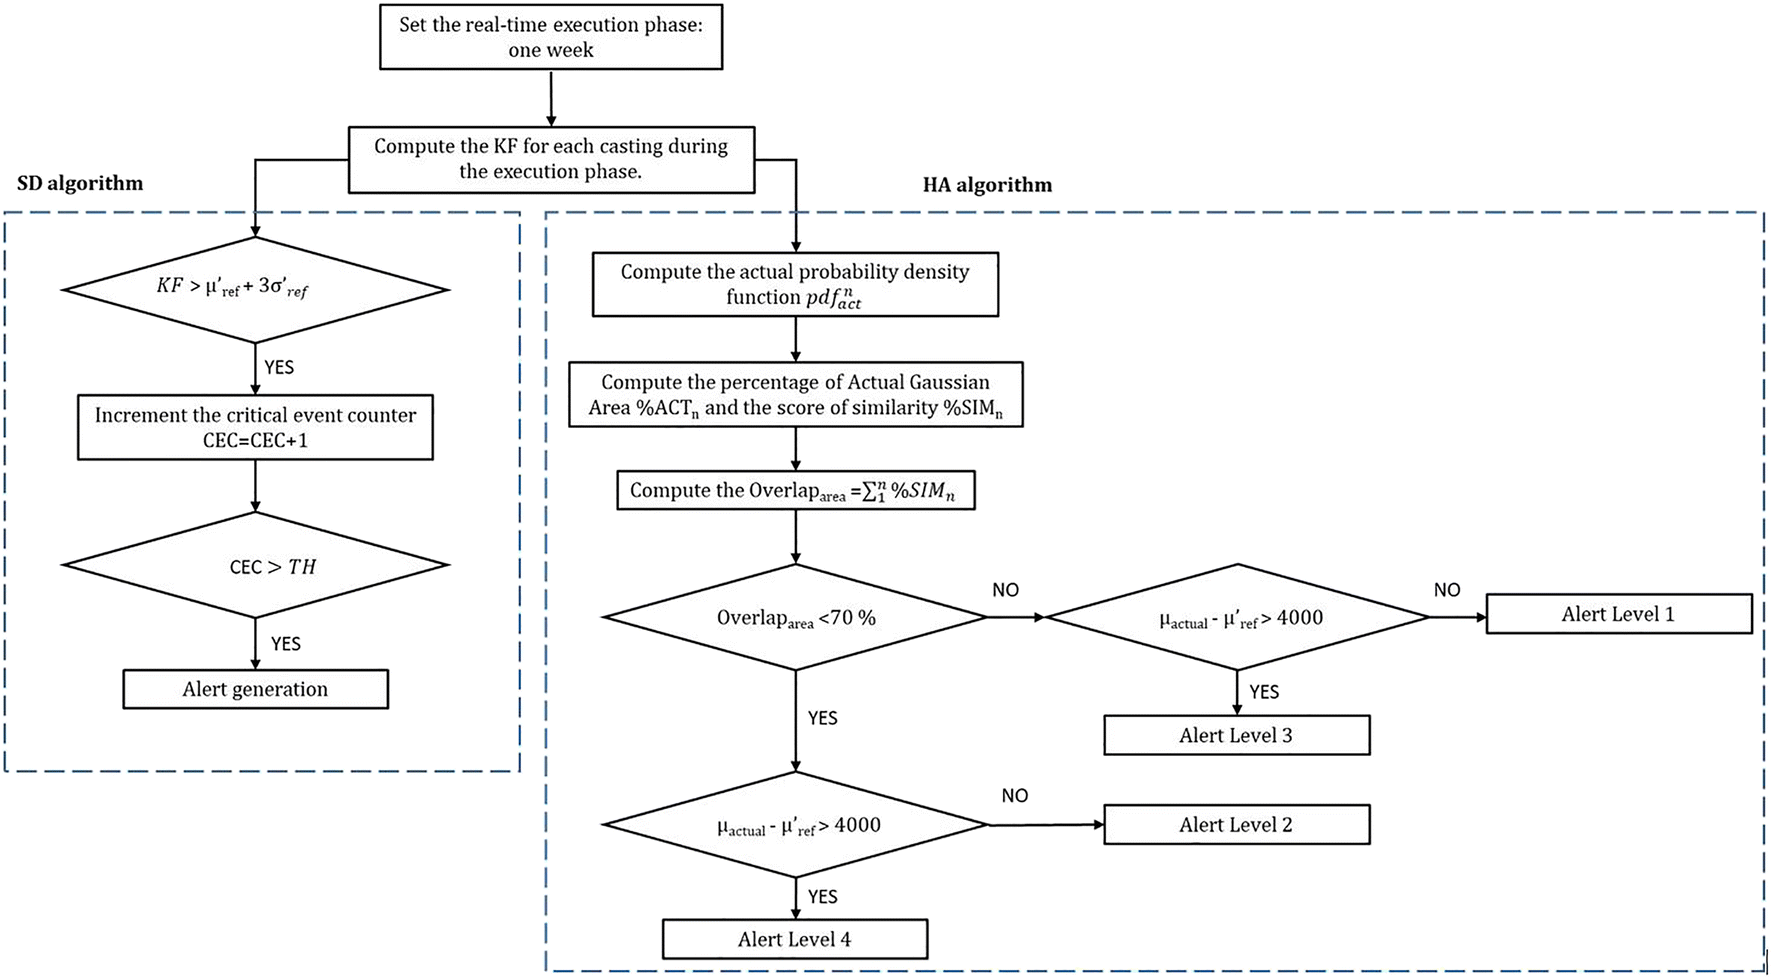 Data-driven CBM tool for risk-informed decision-making in an